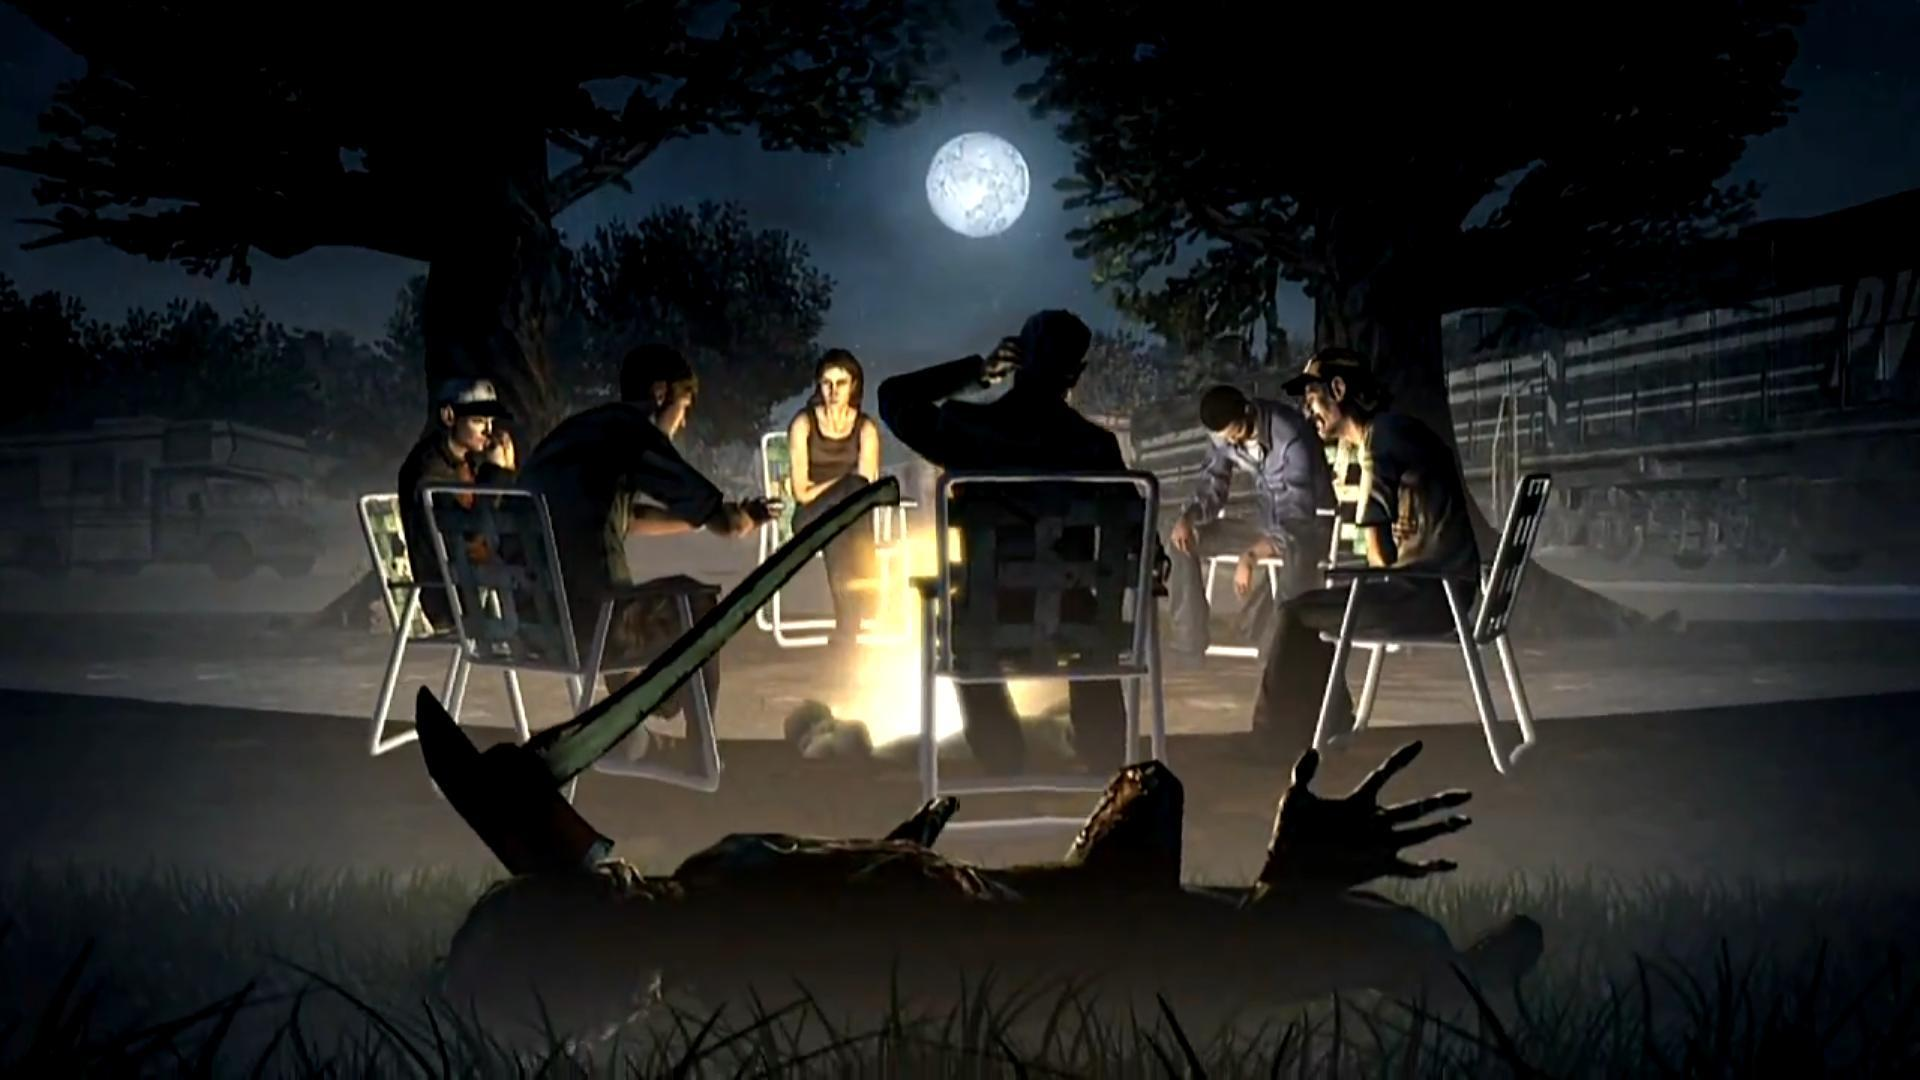 The Walking Dead Season 2 Game HD Wallpapers | Foolhardi.